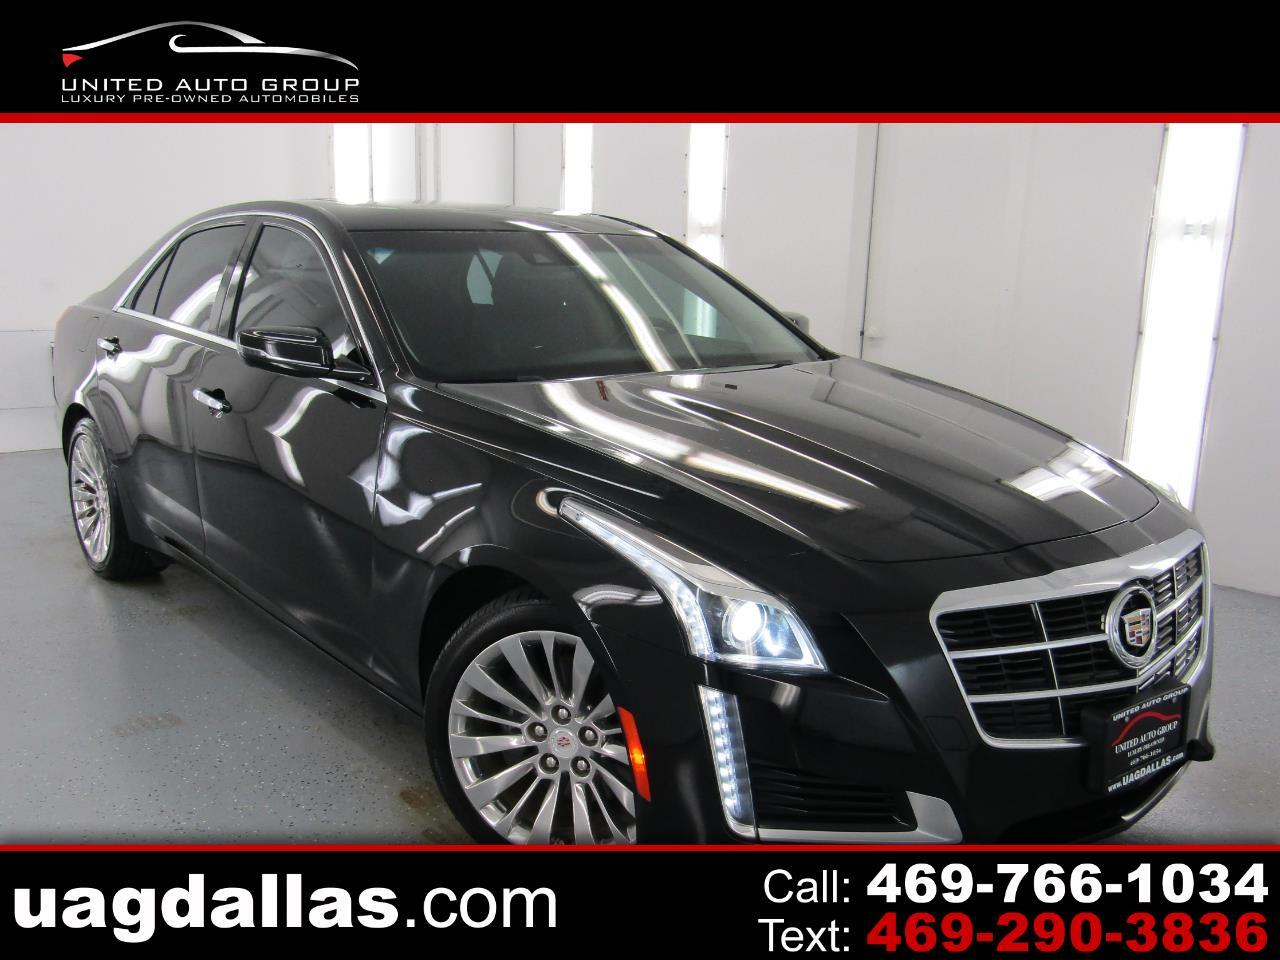 Cadillac CTS Sedan 4dr Sdn 2.0L Turbo Luxury RWD 2014